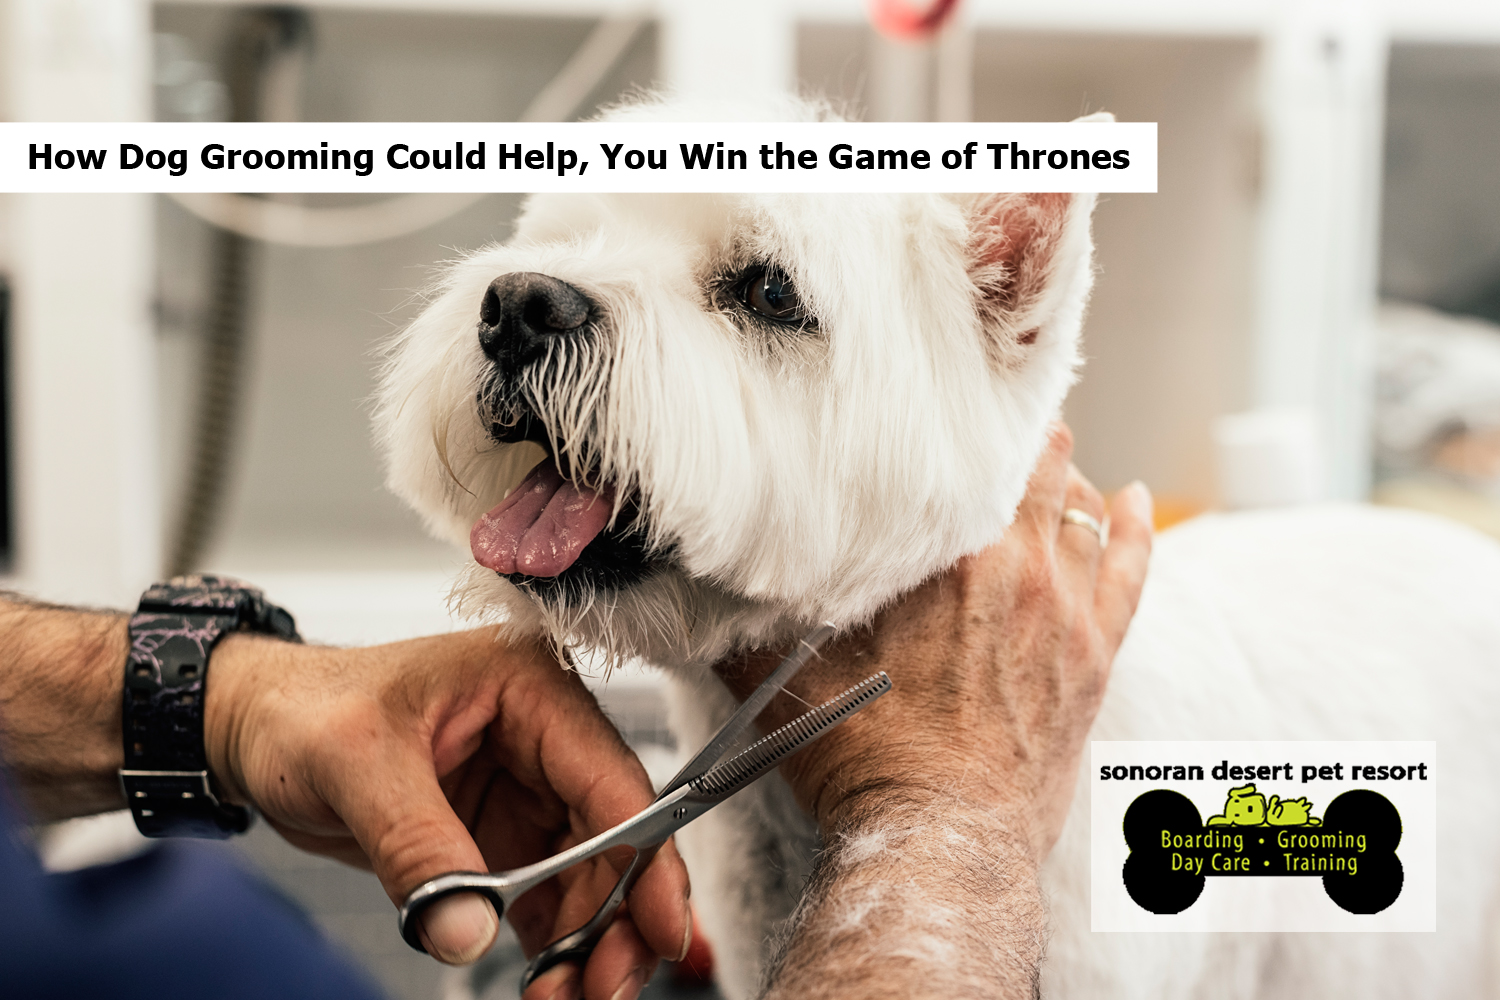 How Dog Grooming Could Help, You Win the Game of Thrones